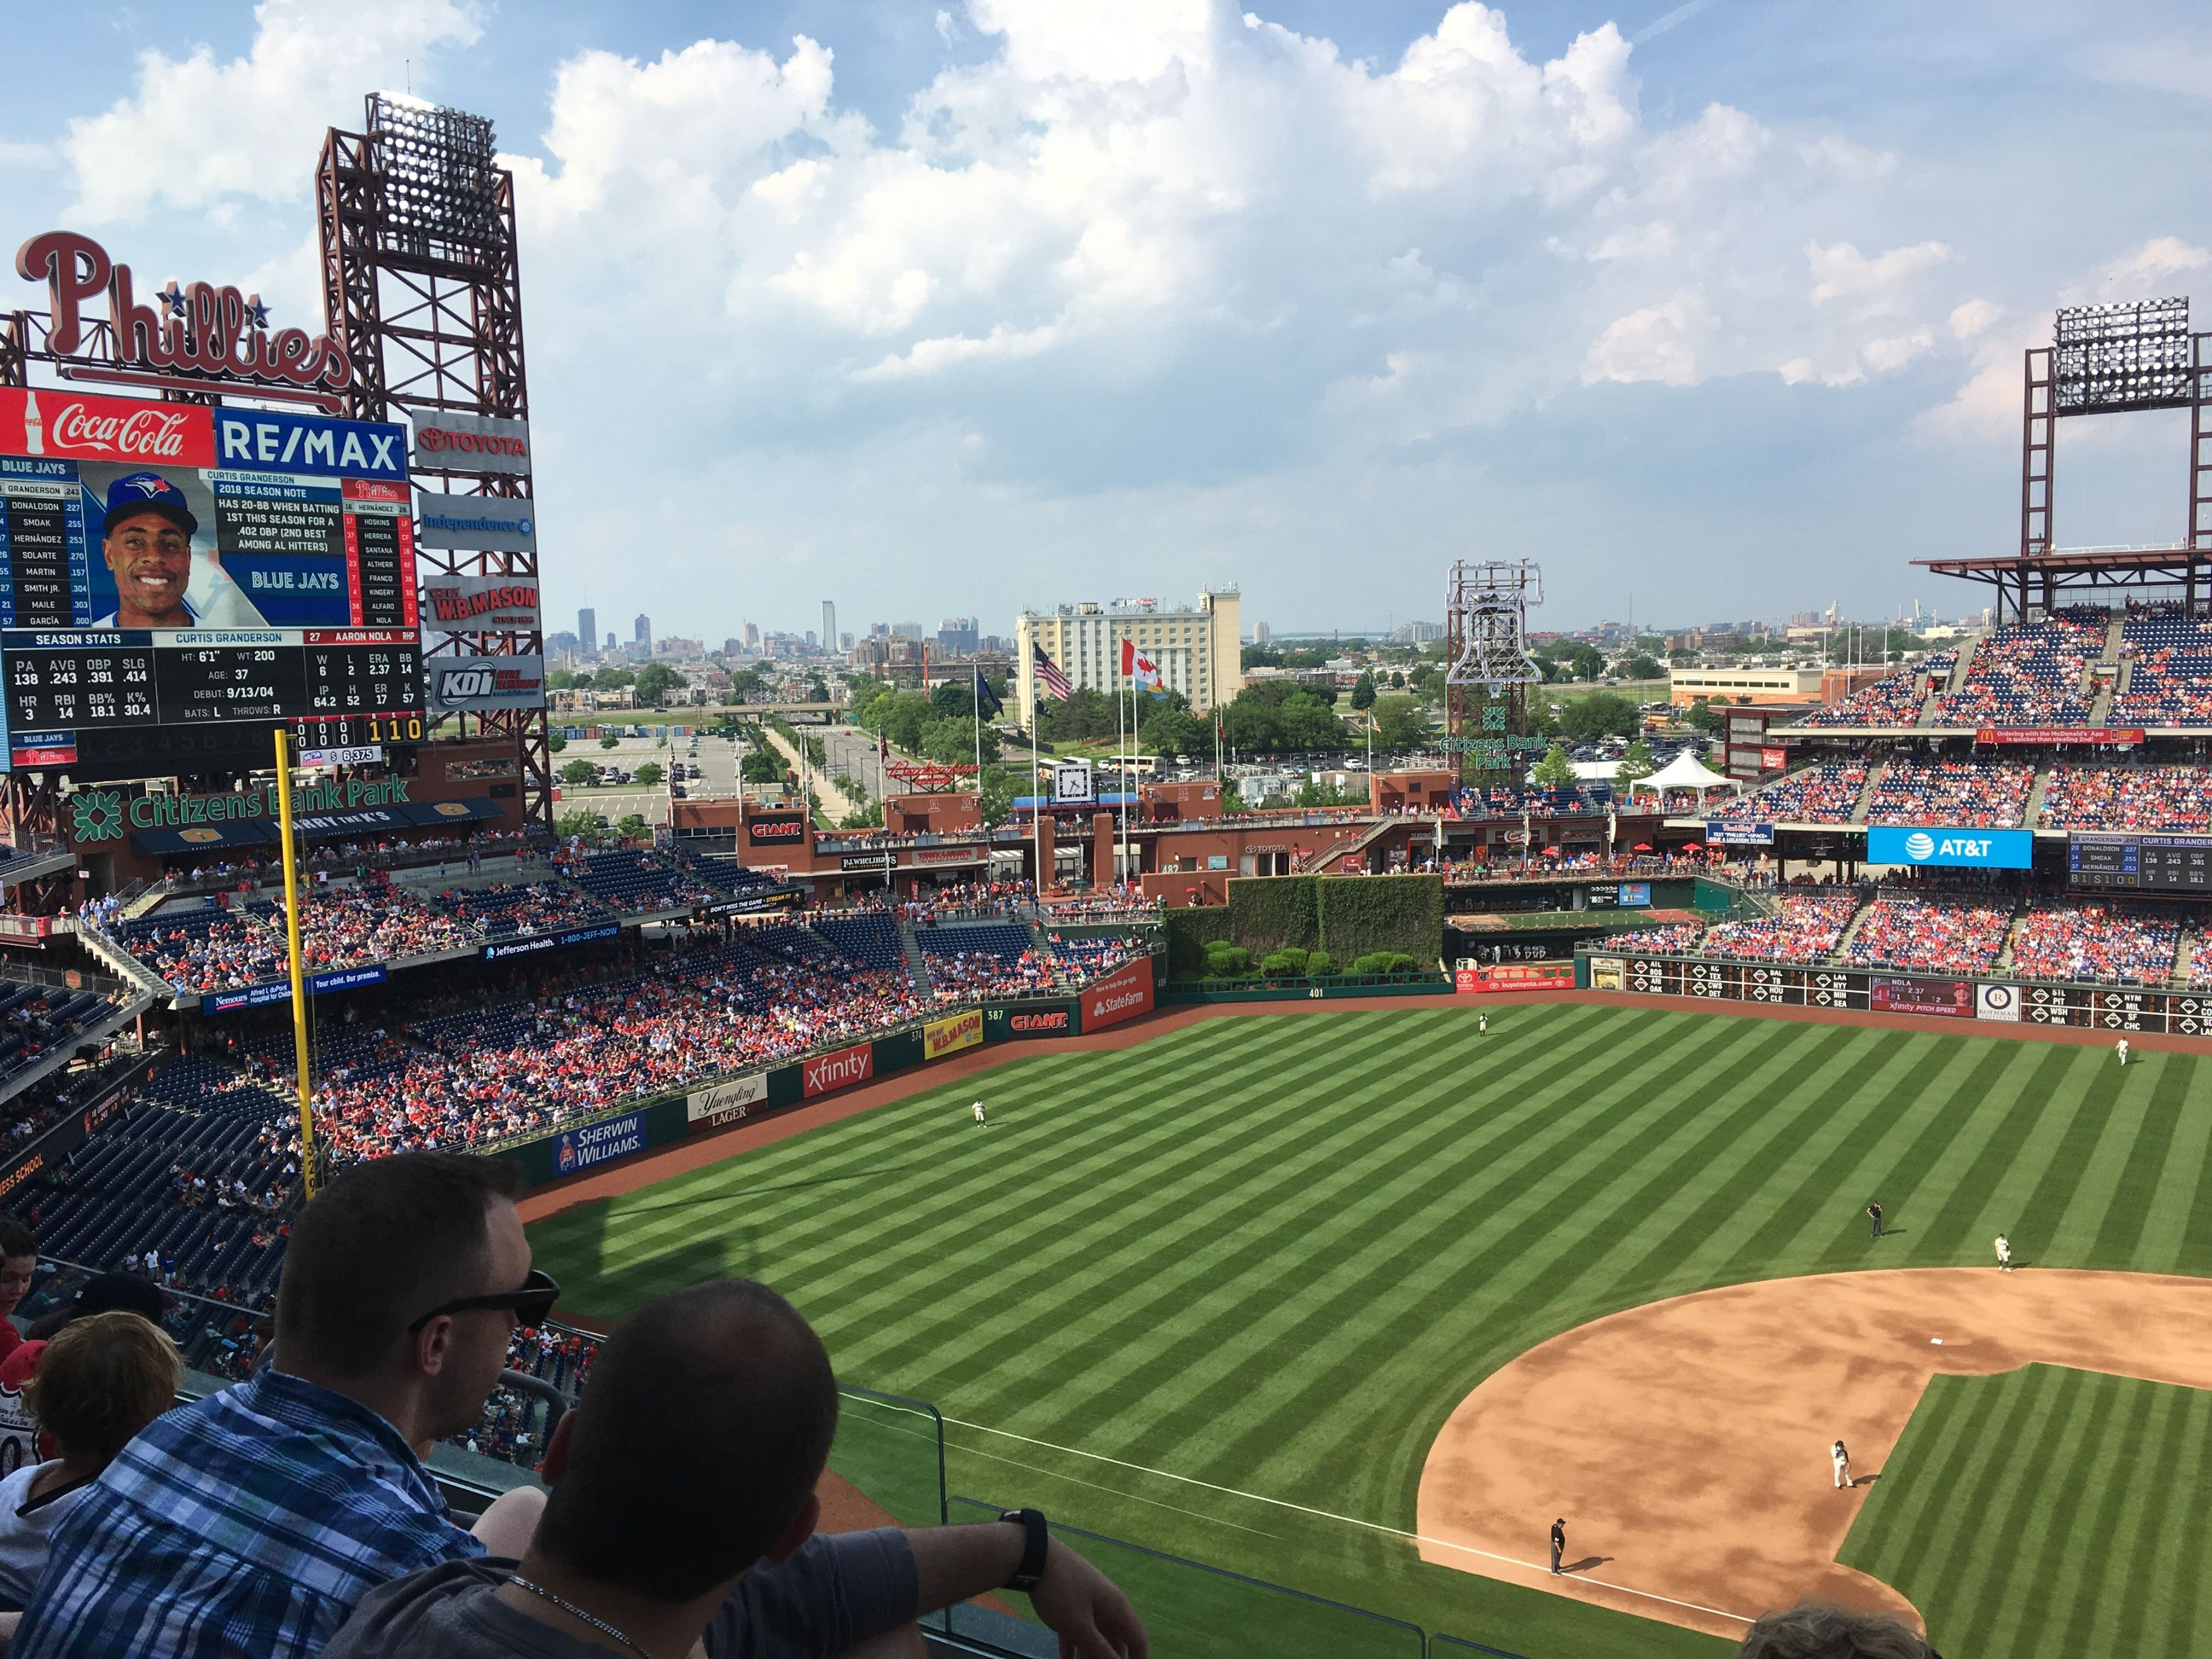 Citizens Bank Park: Home of the Philadelphia Phillies